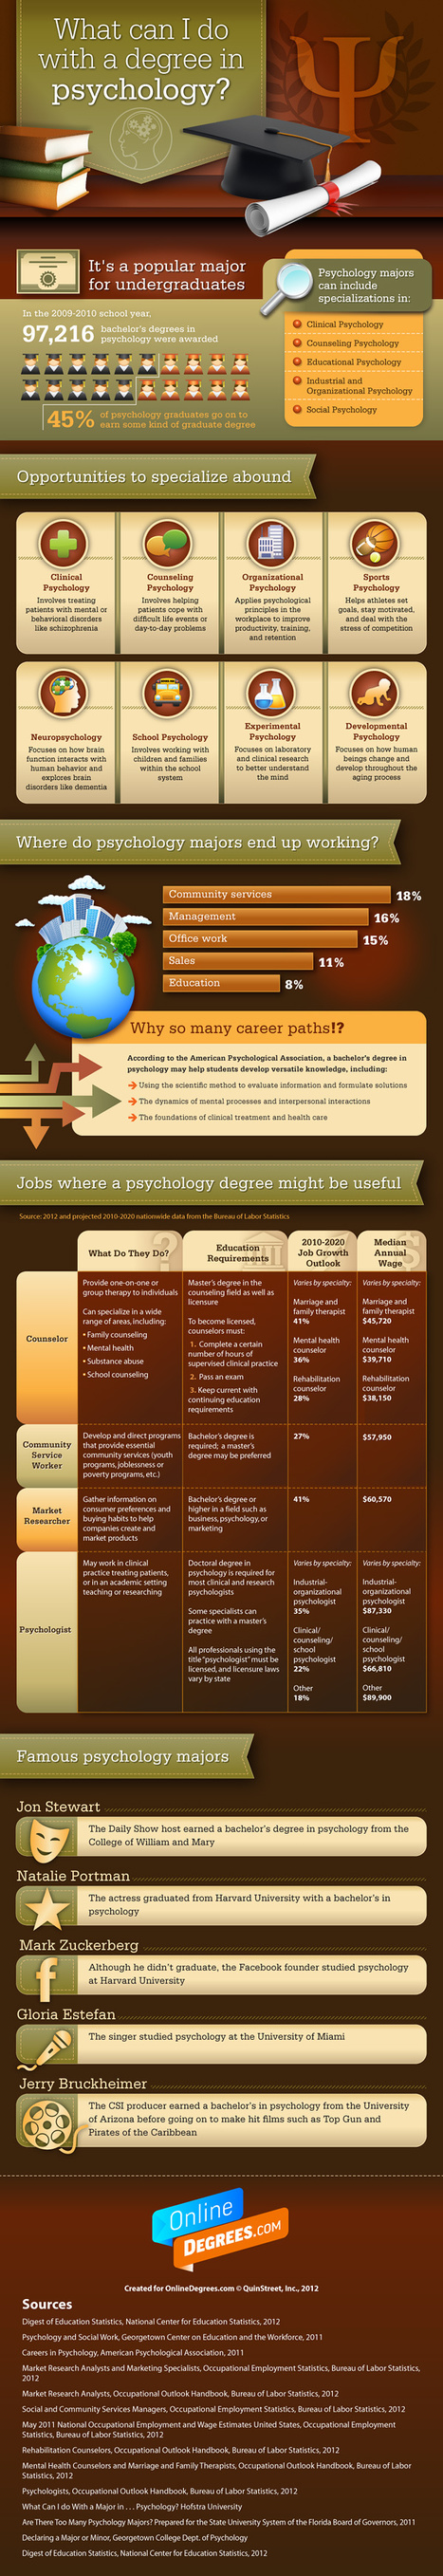 What Can I Do With a Degree in Psychology? [Infographic] | Business 2 Community | Psychology | Scoop.it